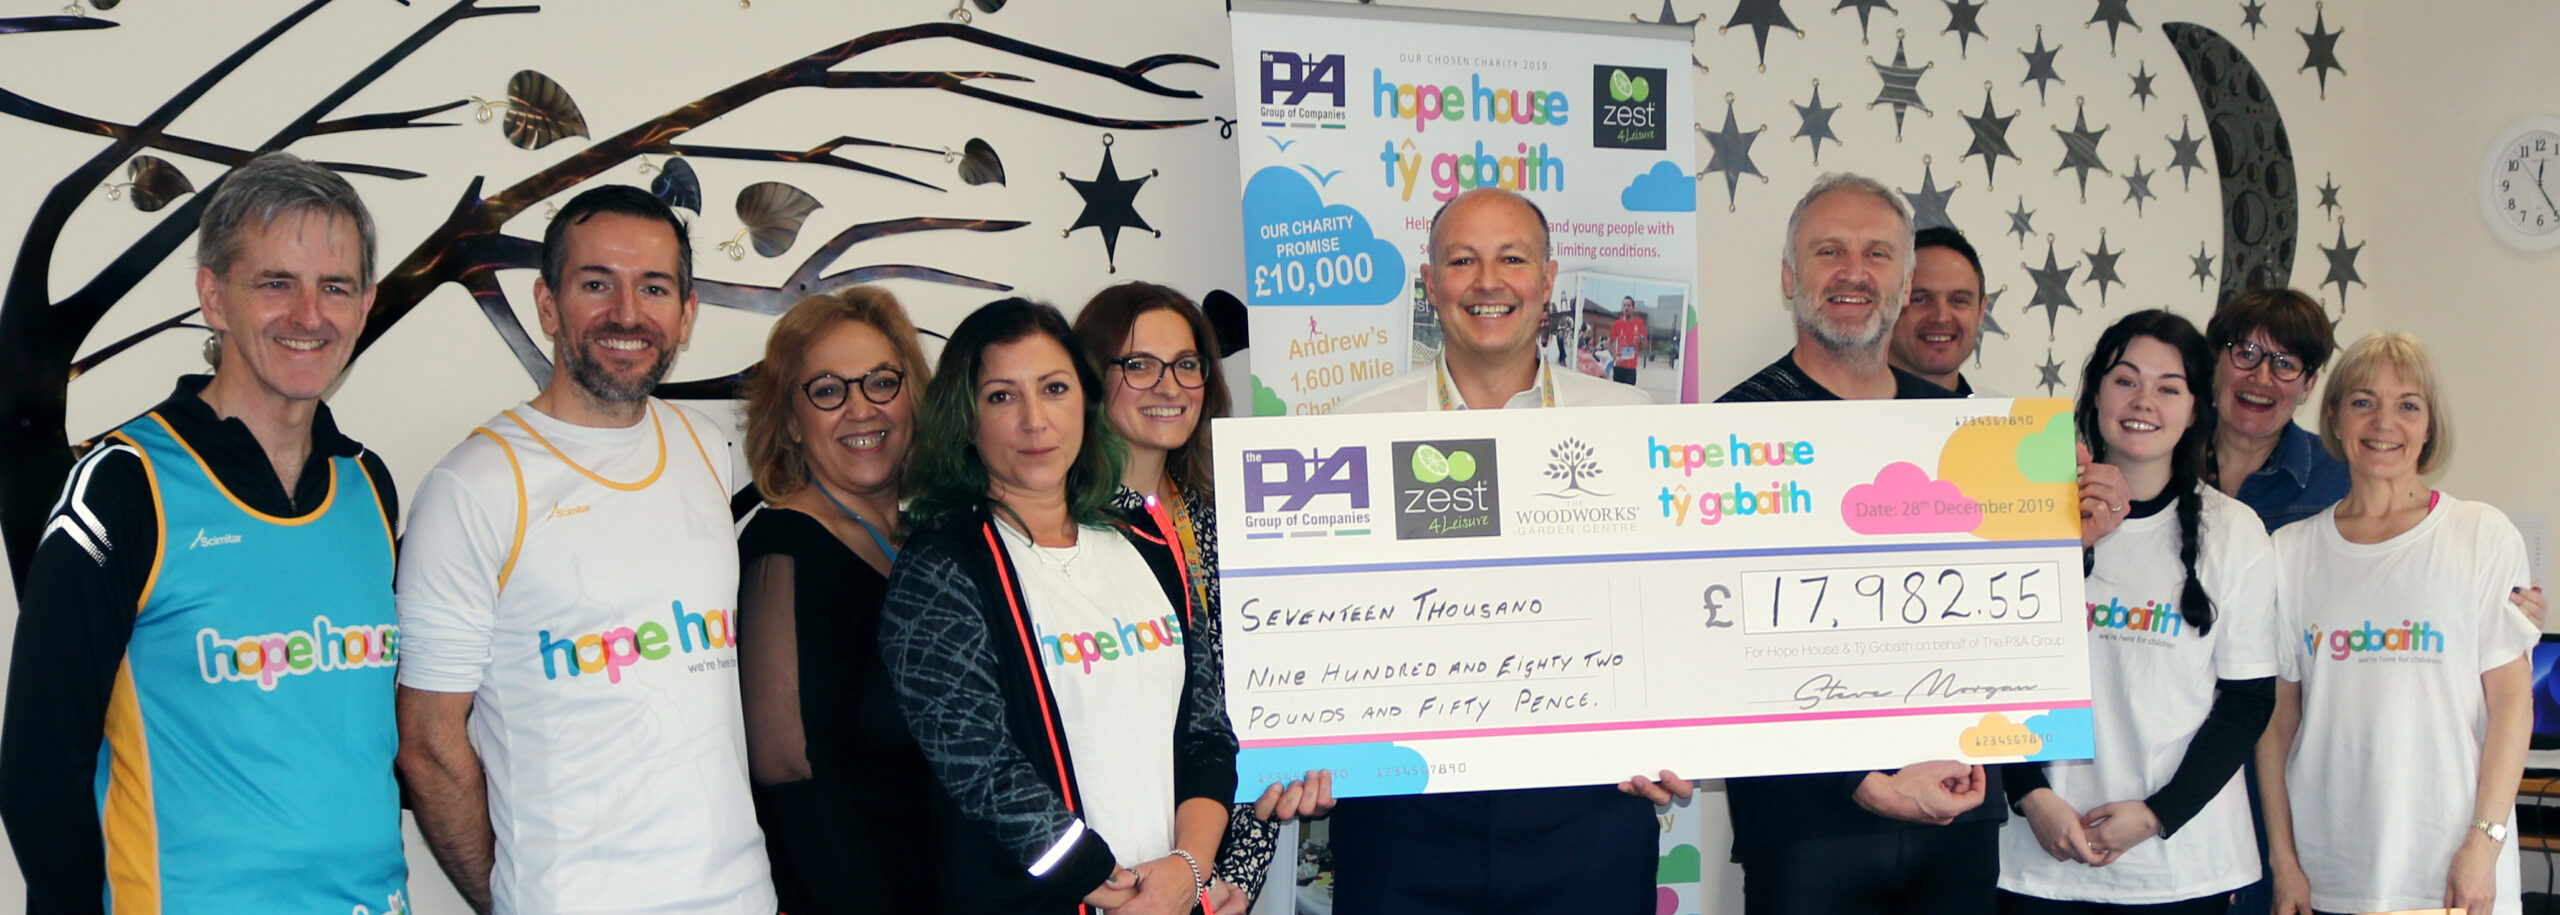 P&A Group donates £17,982.55 to Hope House Children's Hospice